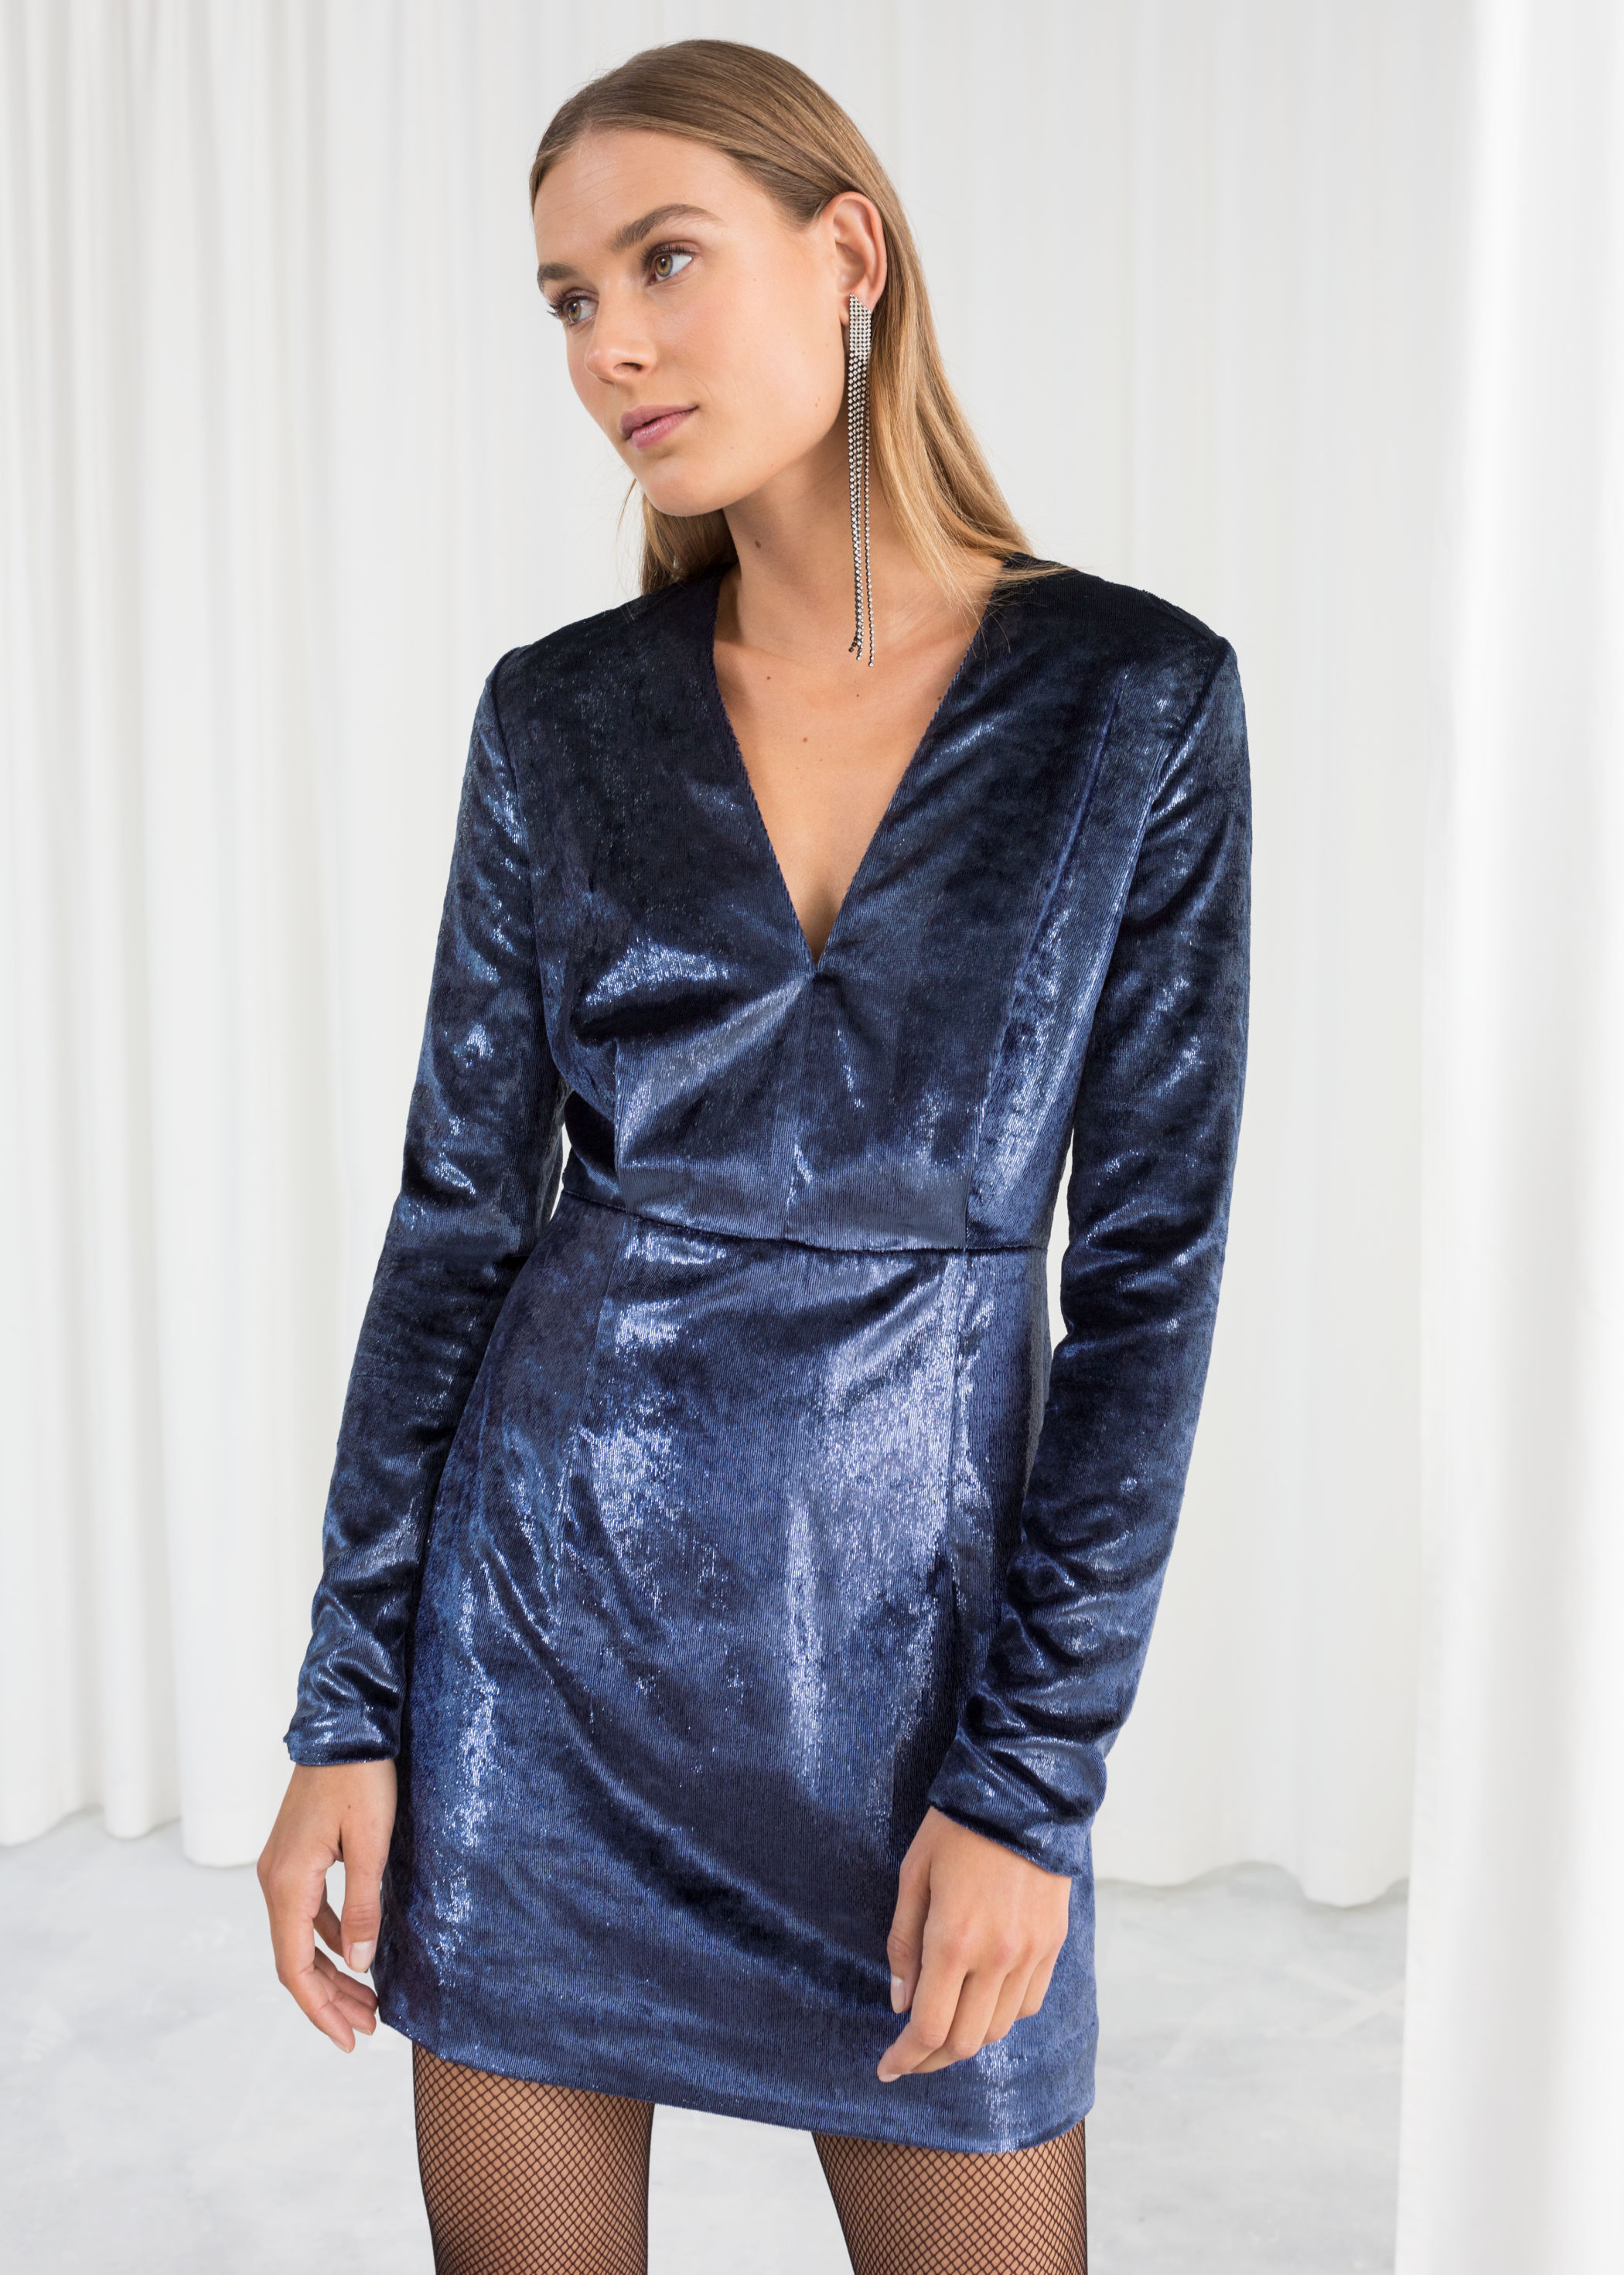 b96f1b541f13 Best Party Dresses To Wear On New Years Eve 2019